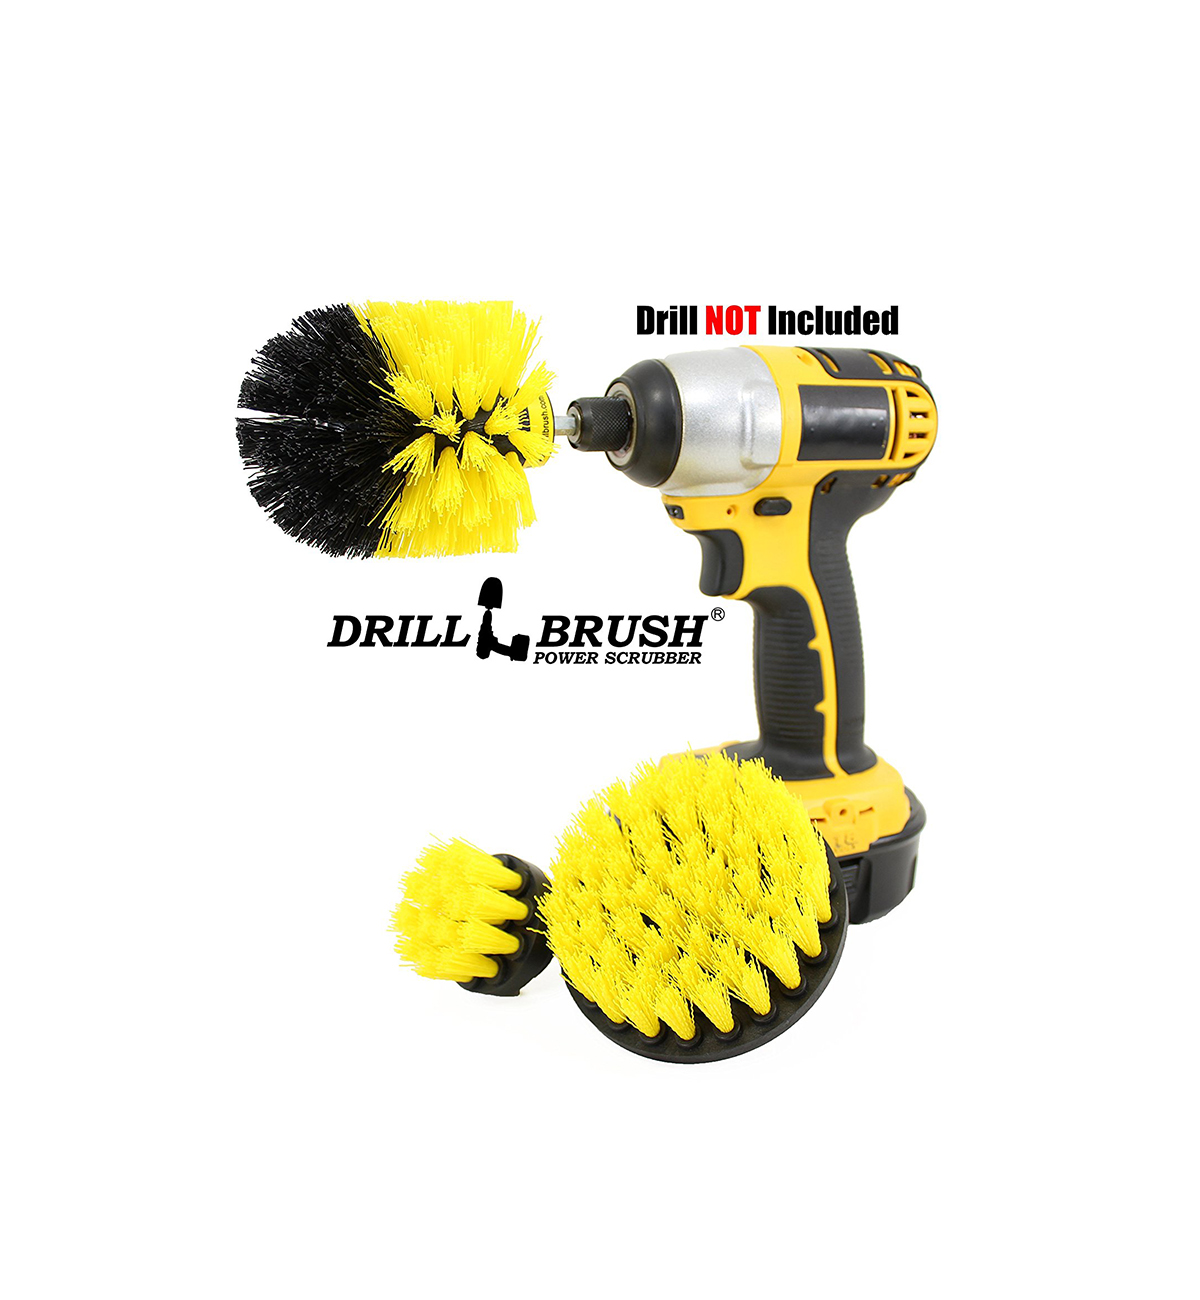 Amazon Best Sellers, drill scrub brush